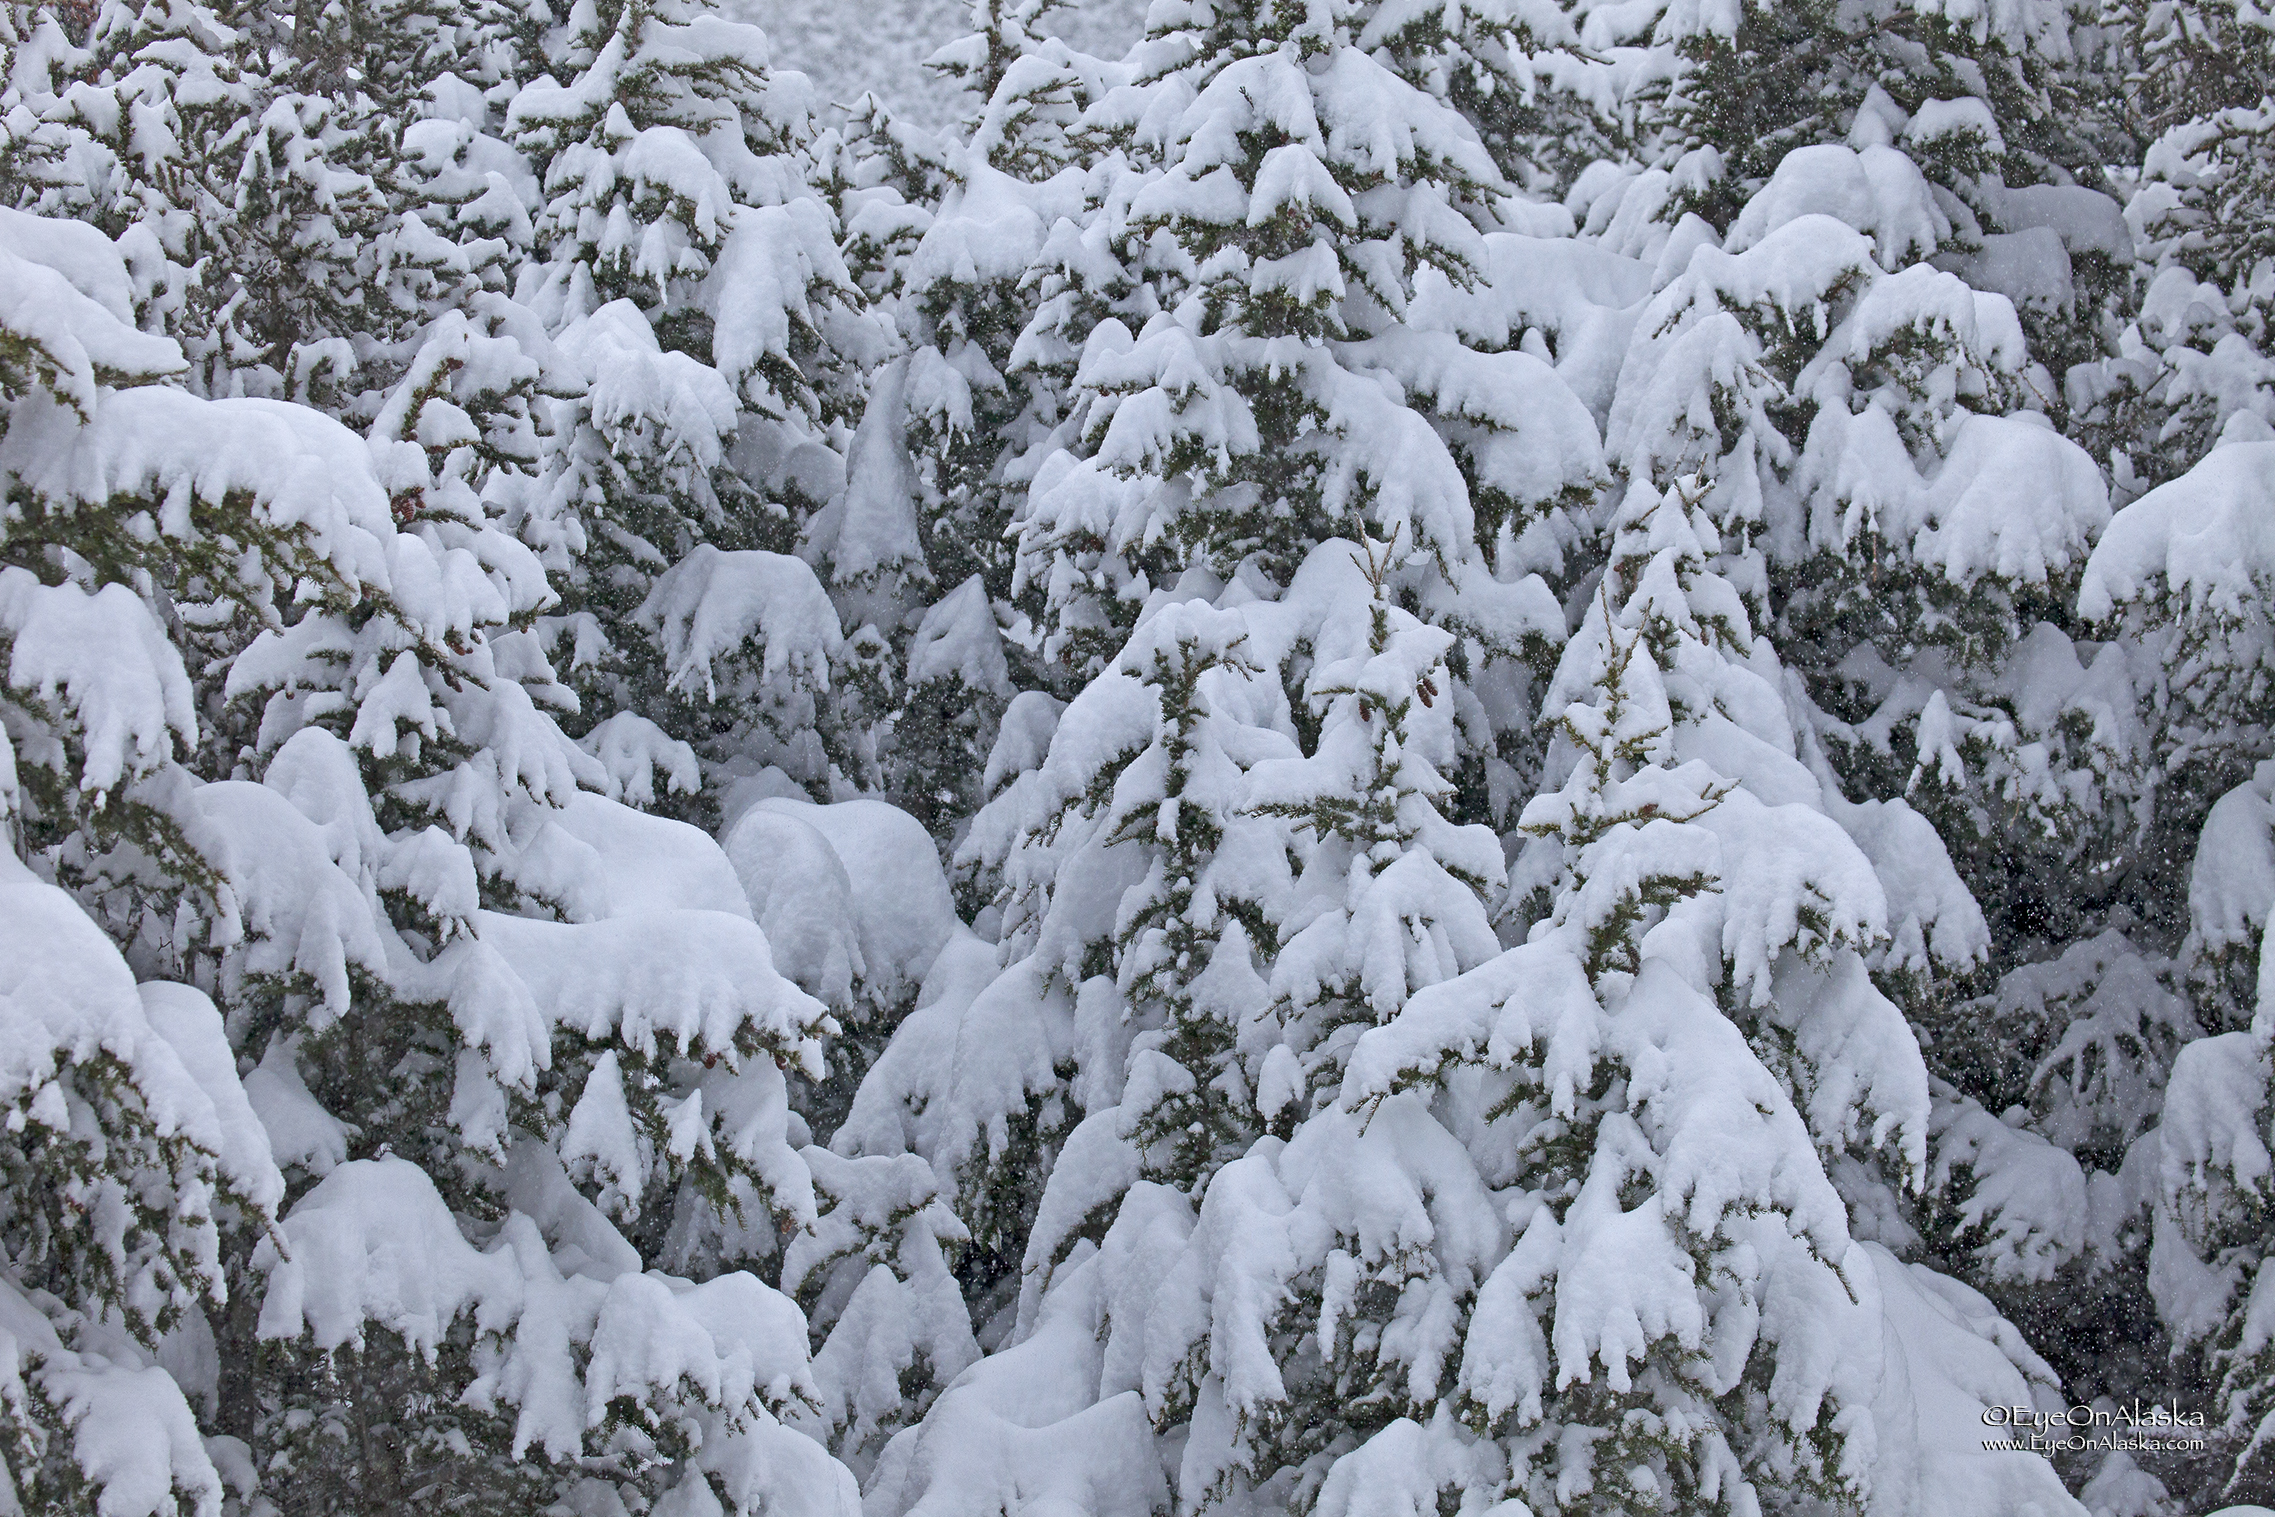 Everything draped in a quiet blanket of falling snow.